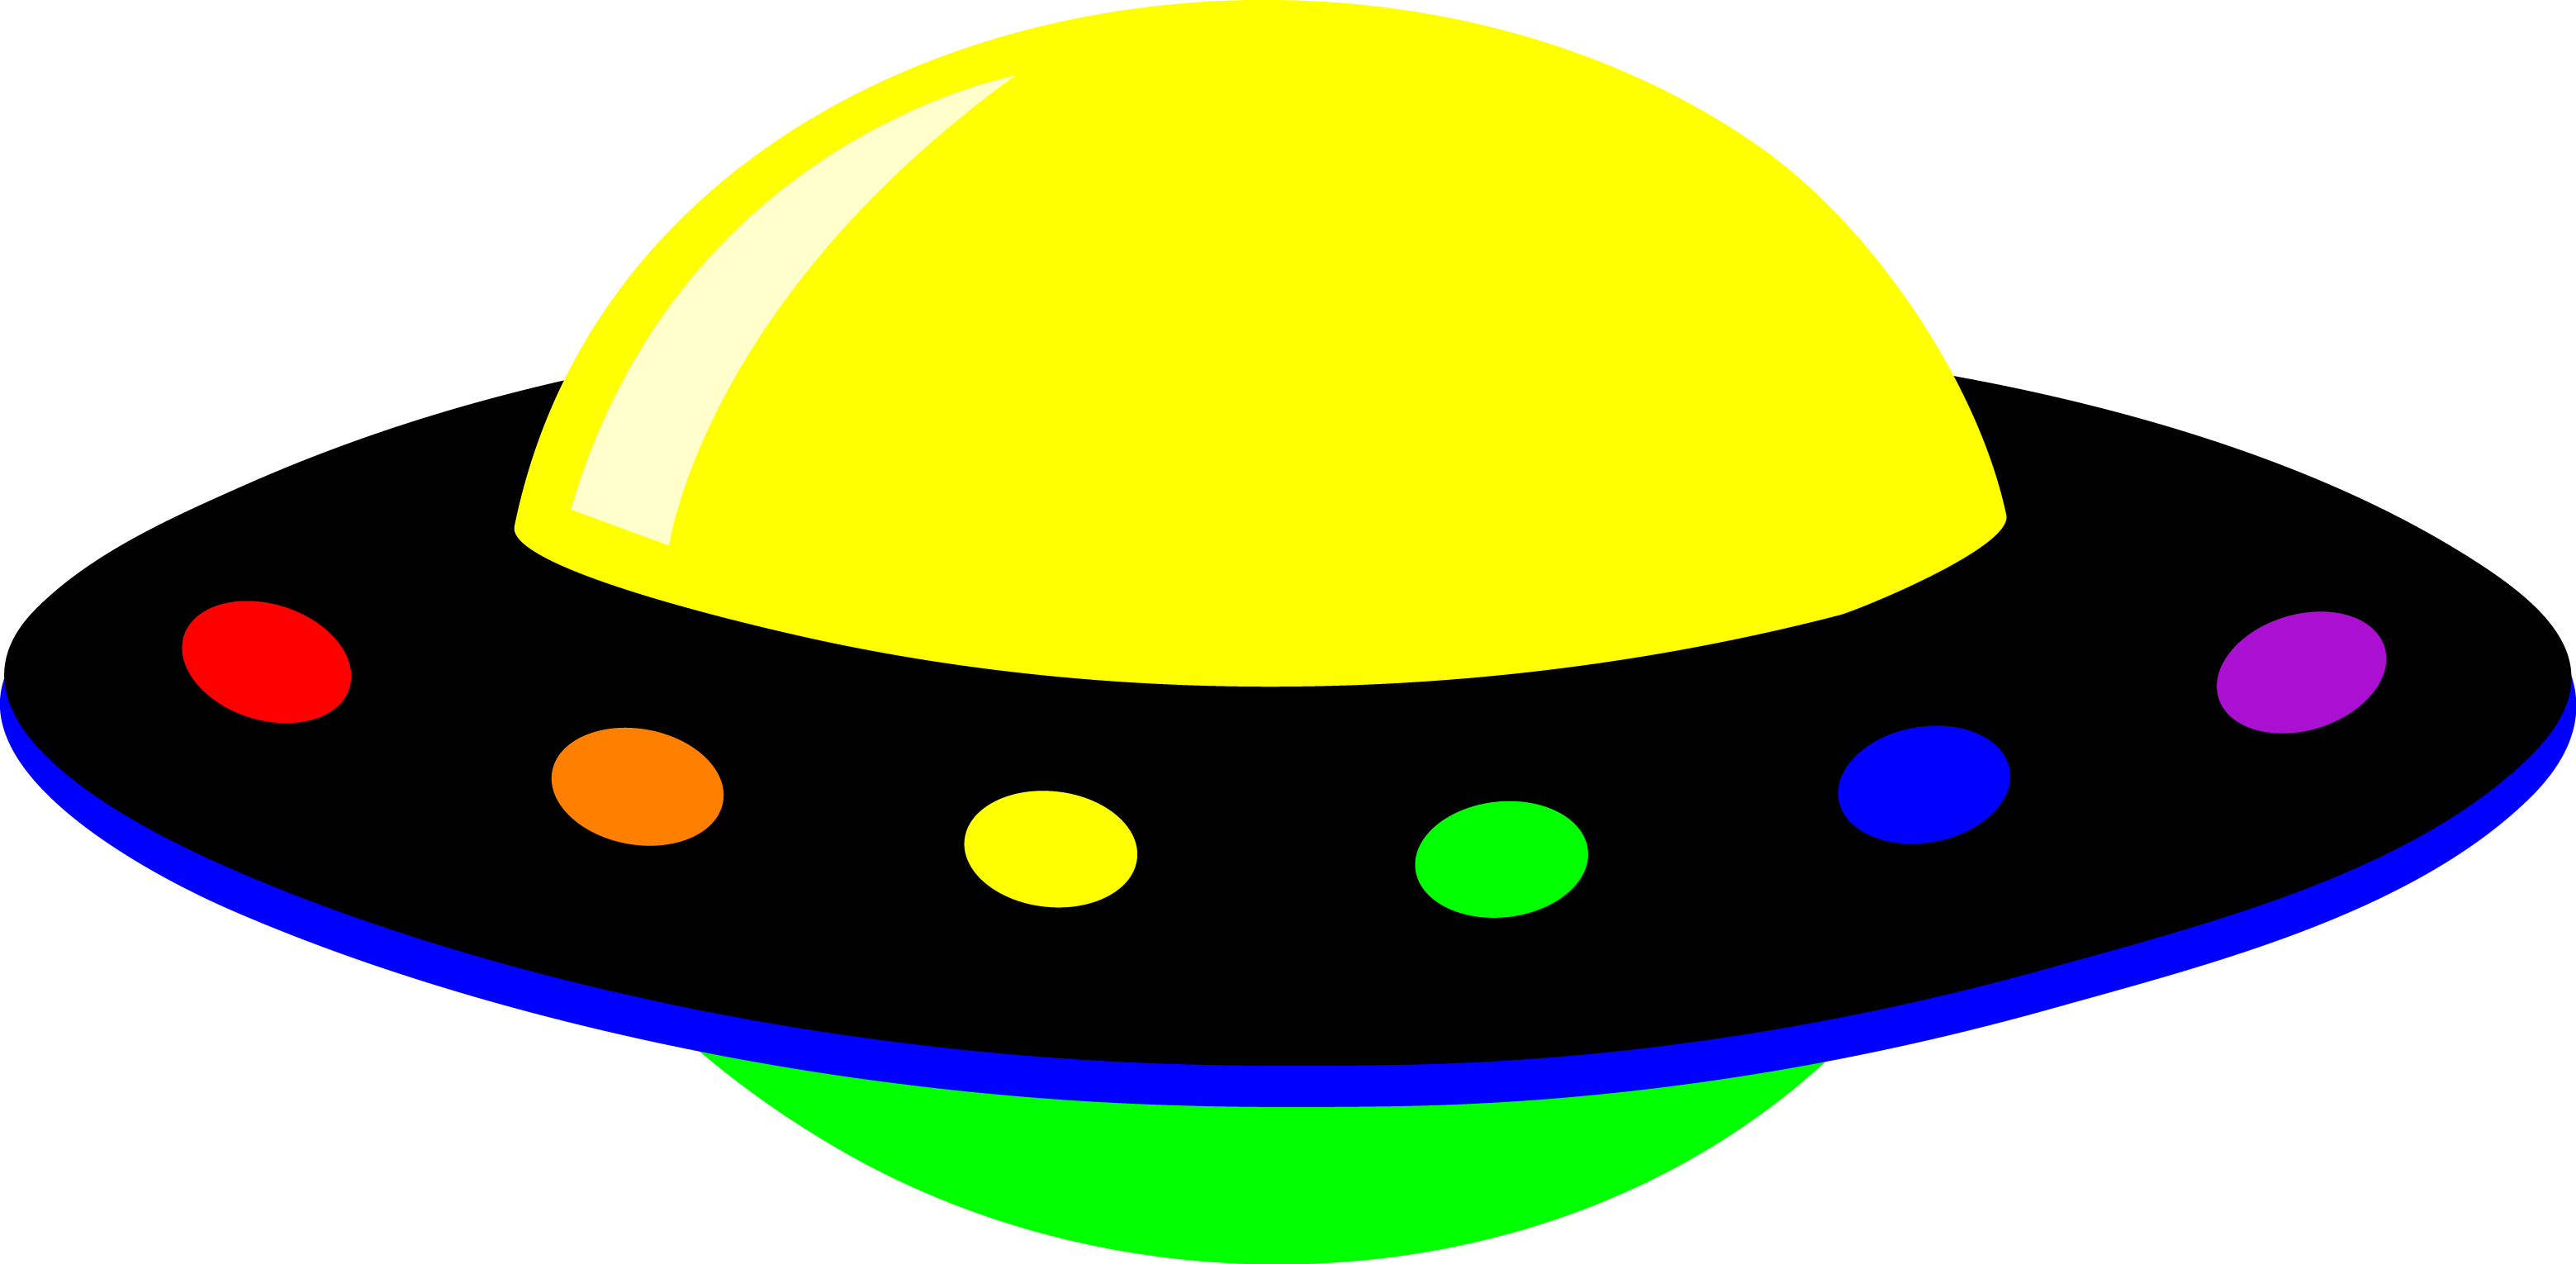 Alien spaceship panda free. Ufo clipart file